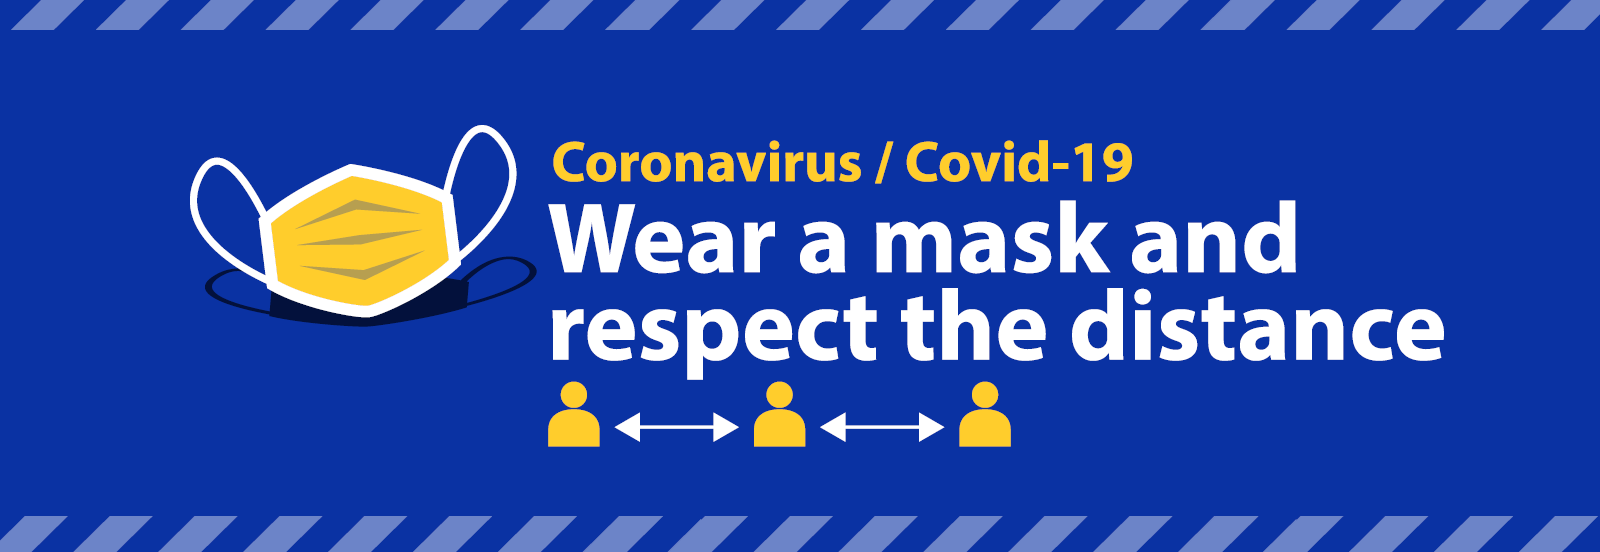 Coronavirus banner promoting wearing a mask and keeping socially distant